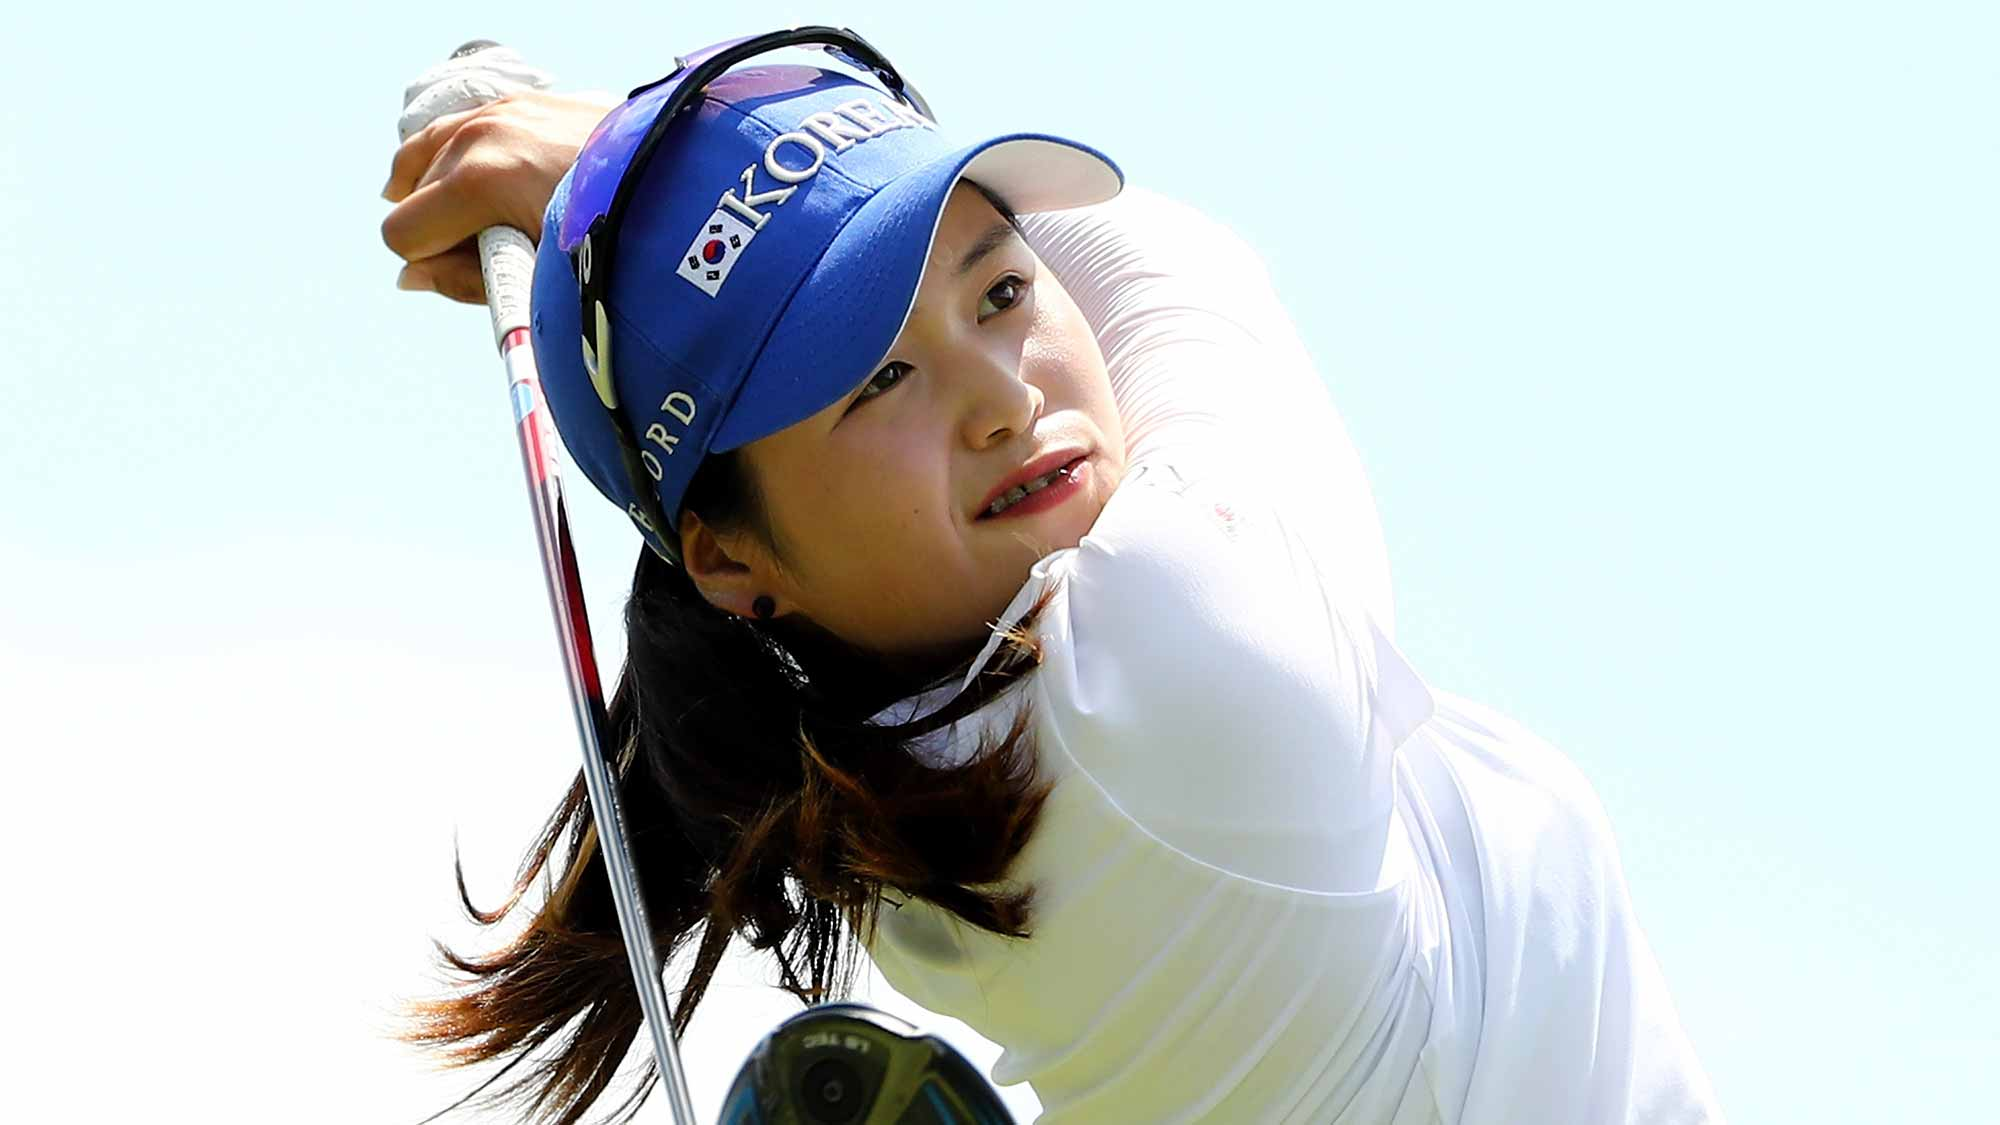 Hye-Jin Choi of Korea takes her shot from the seocnd tee during the final round of the U.S. Women's Open on July 16, 2017 at Trump National Golf Club